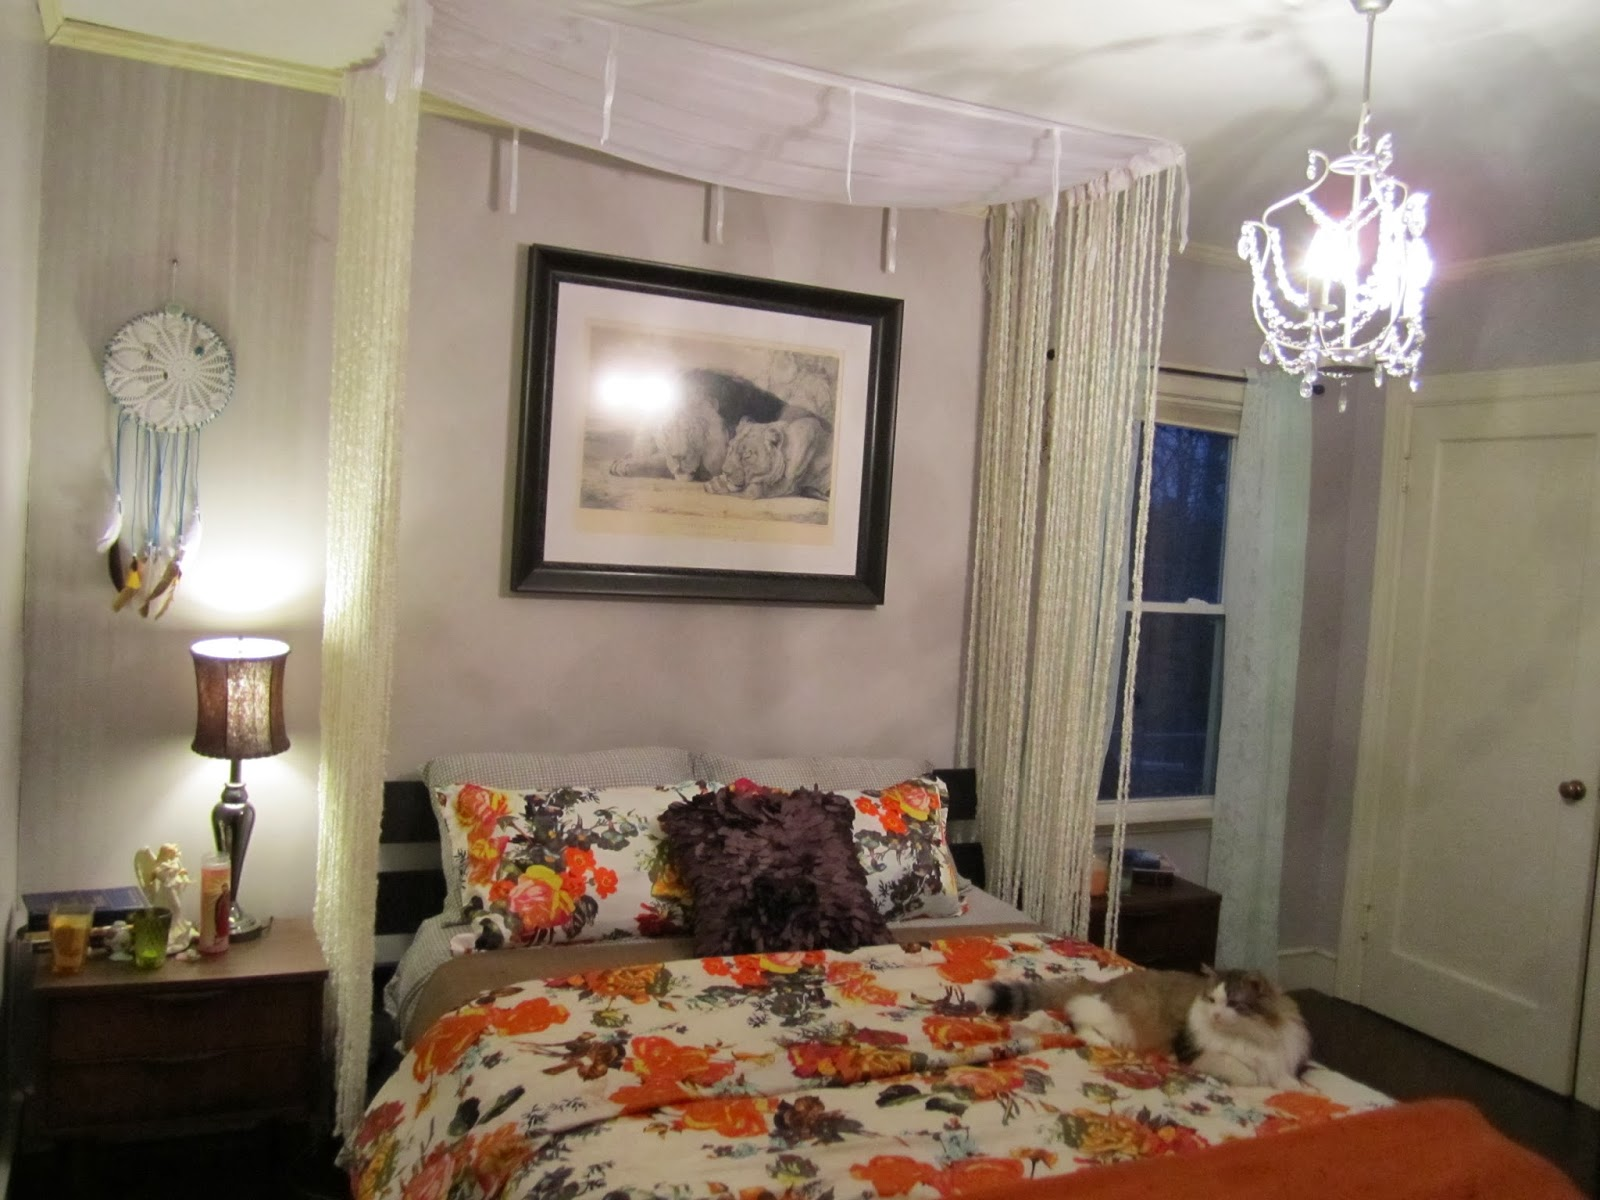 Bedroom diy romantic bed canopy - Diy Romantic Fringe Bed Canopy